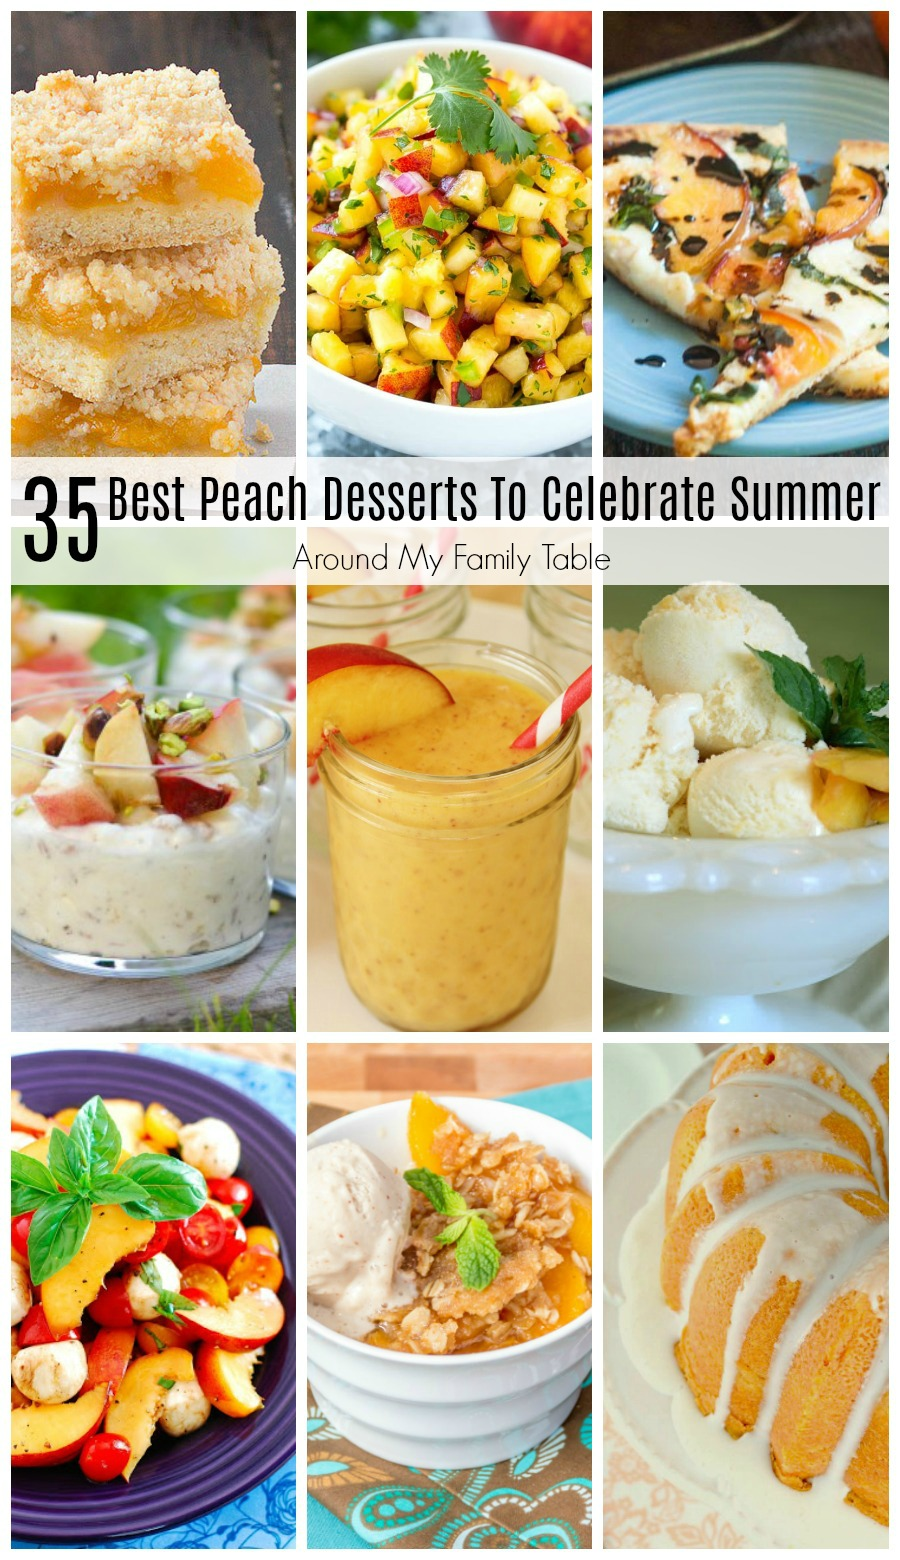 Wanna know what the Best Peach Desserts to Celebrate Summer are?  Well, I've found 35 that I think y'all are gonna love! #peaches #peachdesserts #peachrecipes